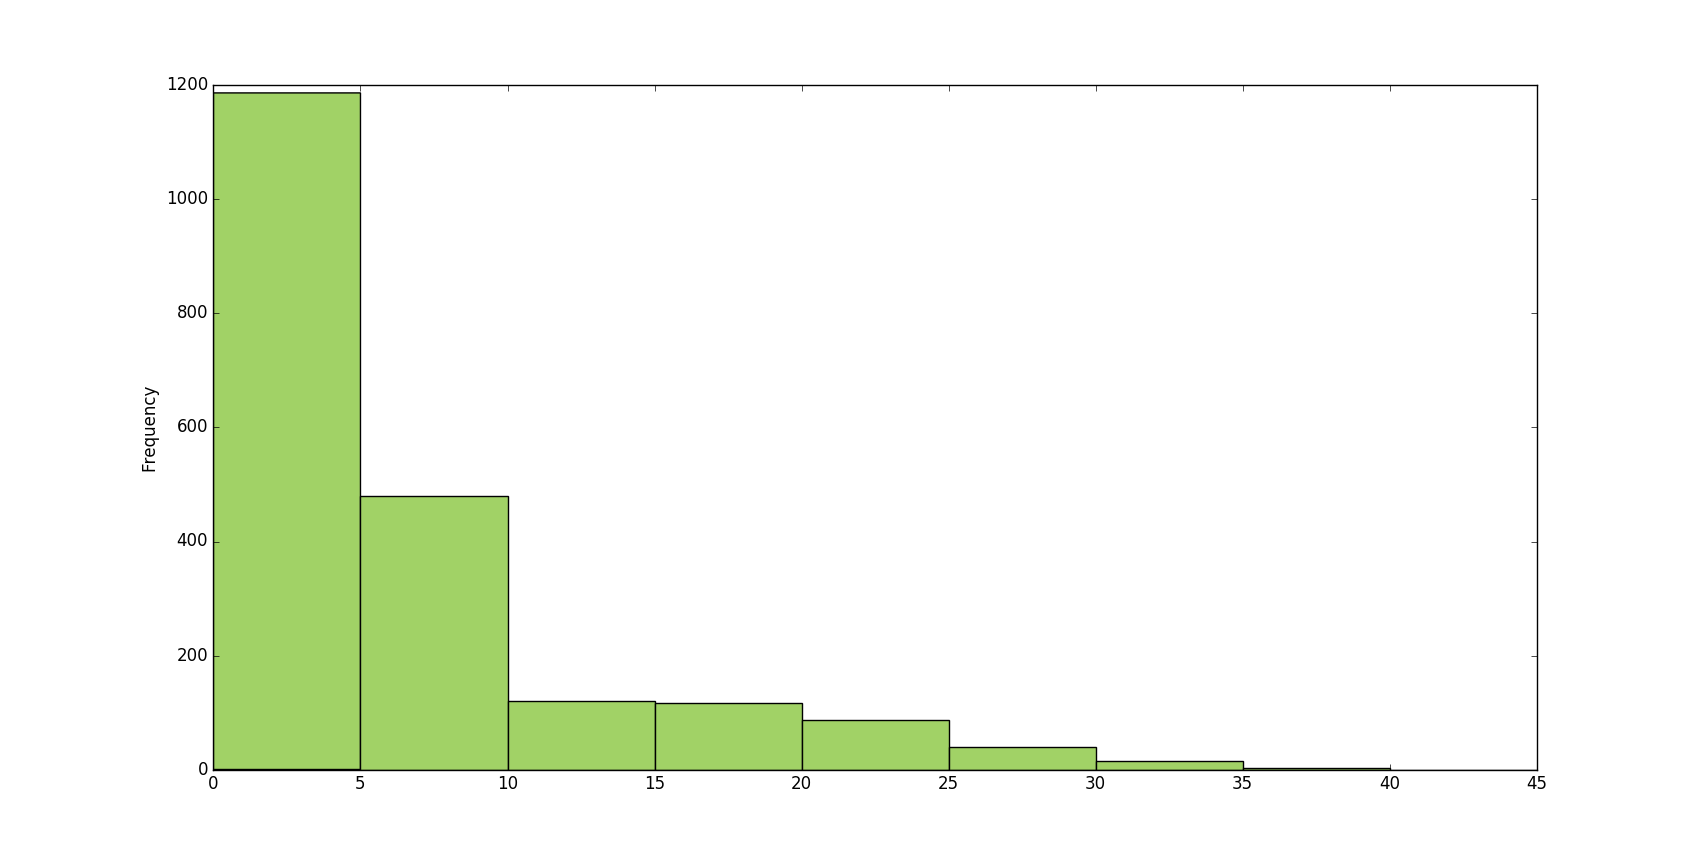 Song Title Histogram